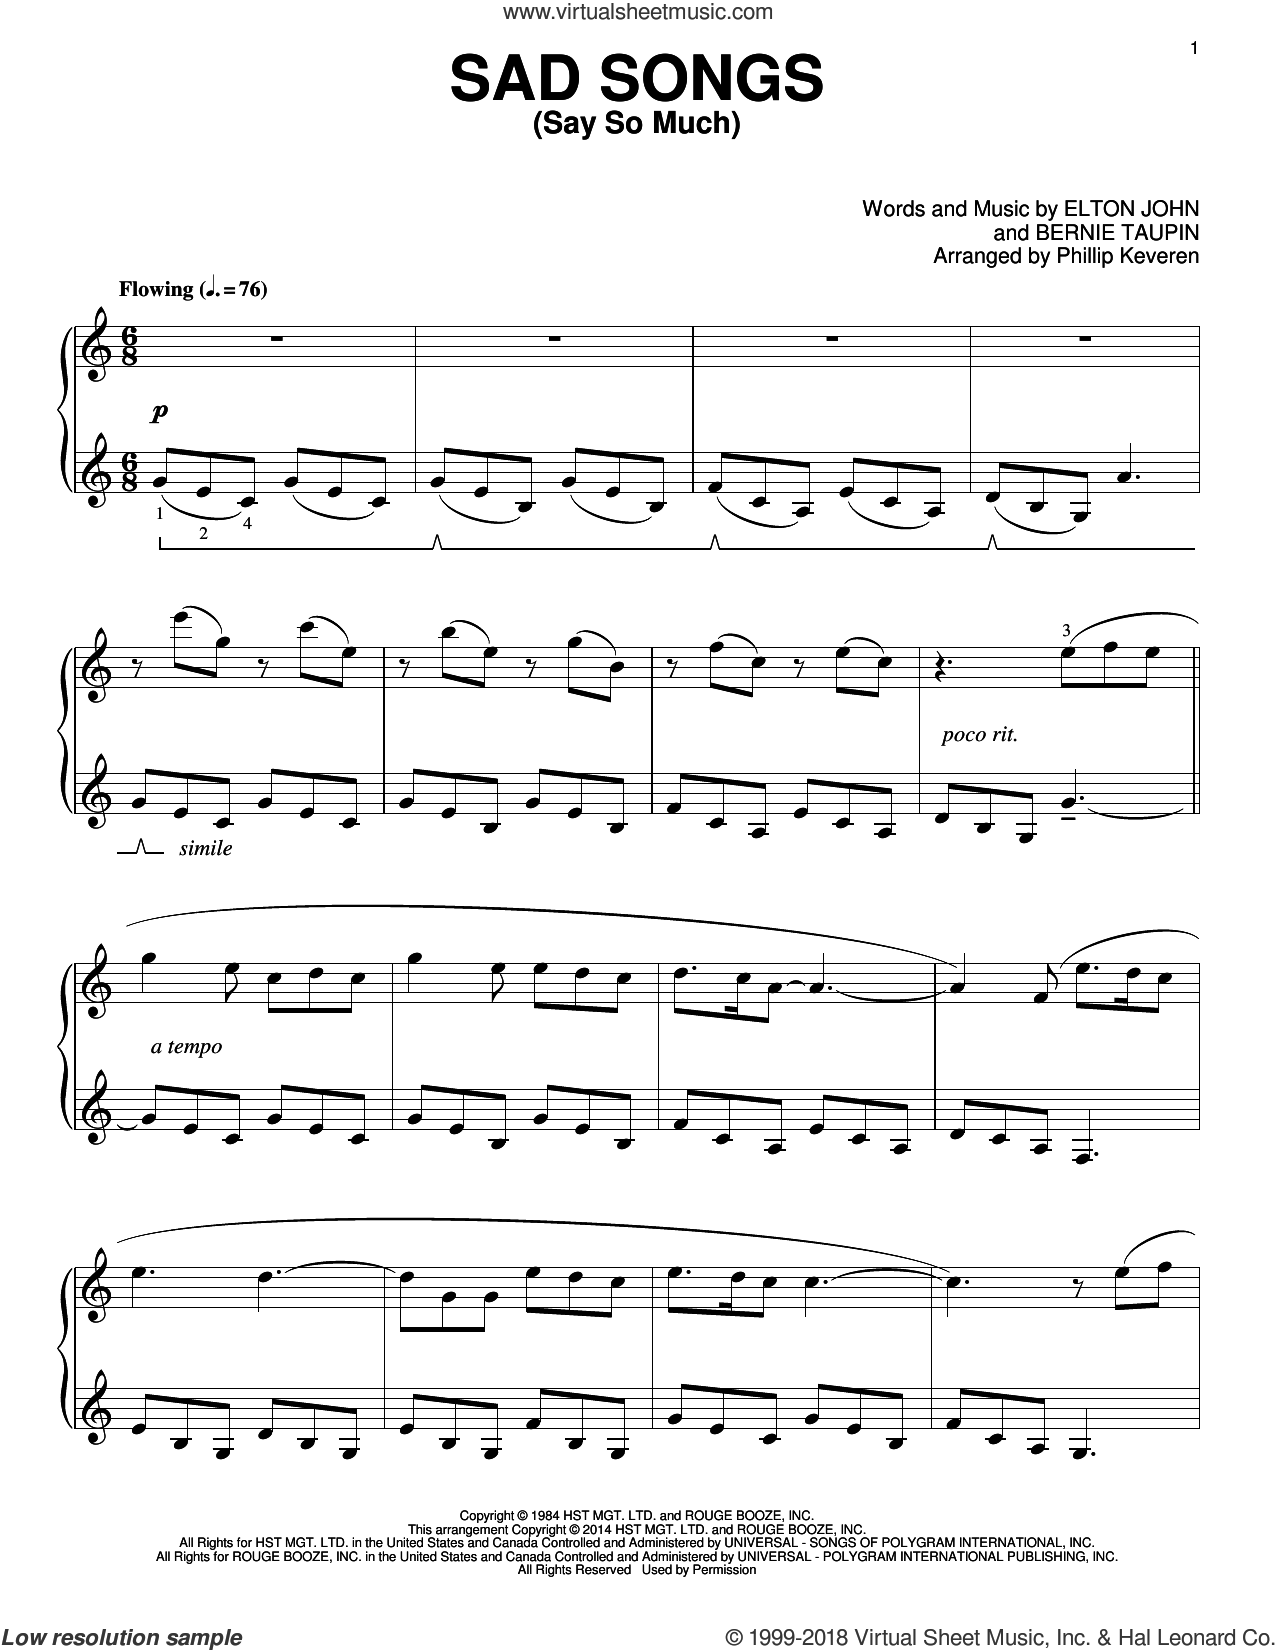 Sad Songs (Say So Much) sheet music for piano solo by Phillip Keveren, Bernie Taupin and Elton John, intermediate skill level